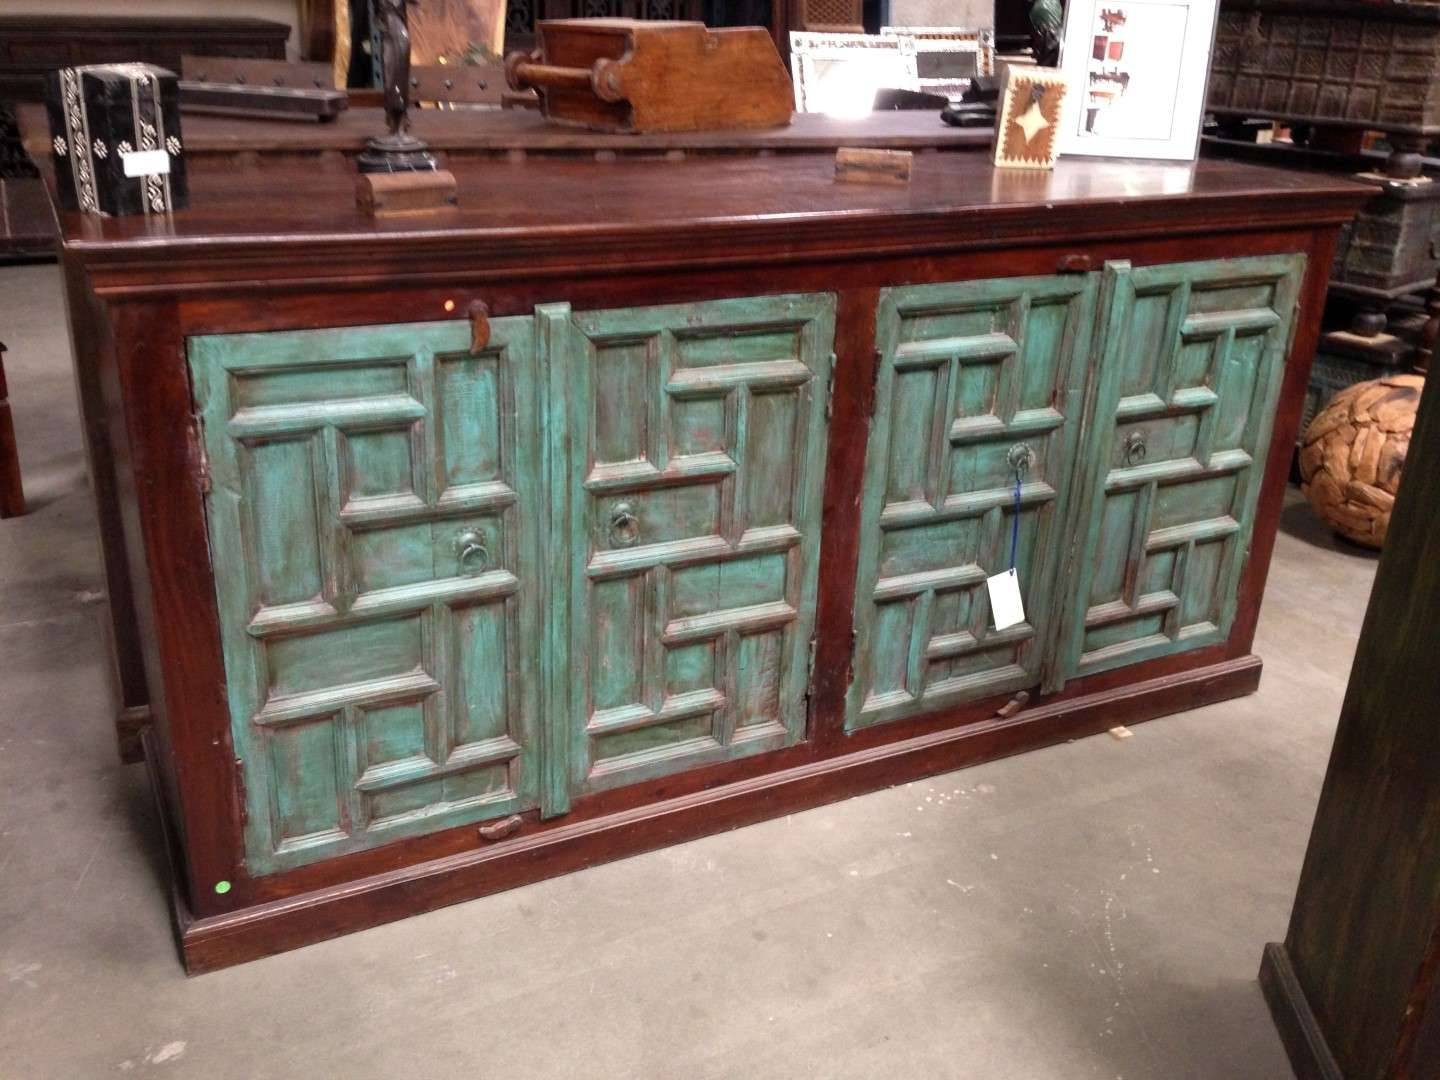 Imported Rustic Sideboards From India, China, Indonesia And Mexico In Indian Sideboards Furniture (View 7 of 20)